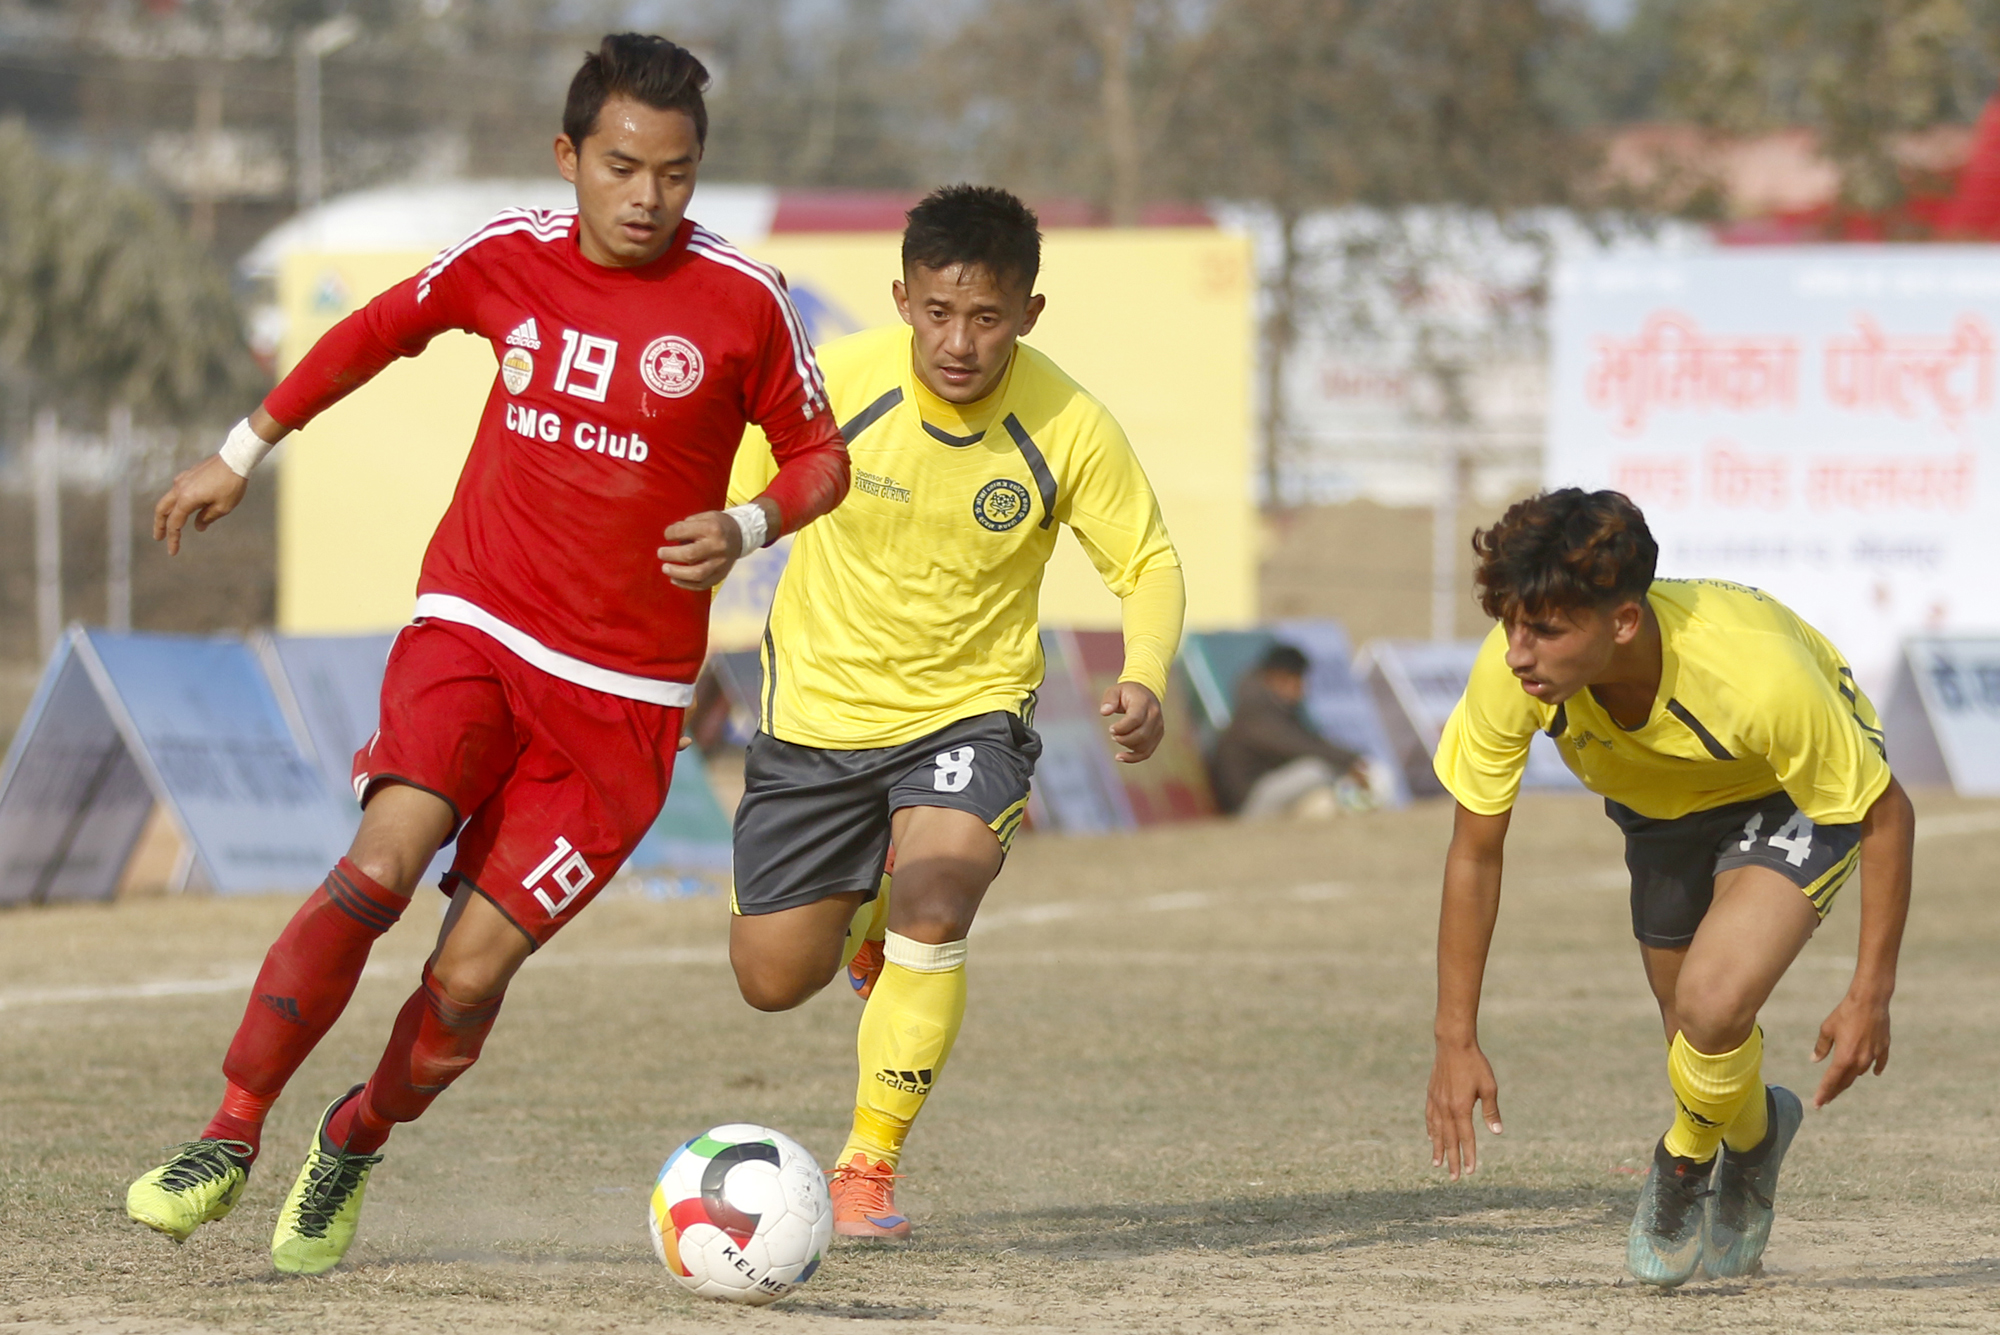 Laxman Ruchal (left) of CMG Club Sankata vies for the ball with Uttam Gurung of Gorkha Boys during their Nepal Ice Farwest Khaptad Gold Cup match in Dhangadhi on Friday, January 11, 2019. Photo: THT